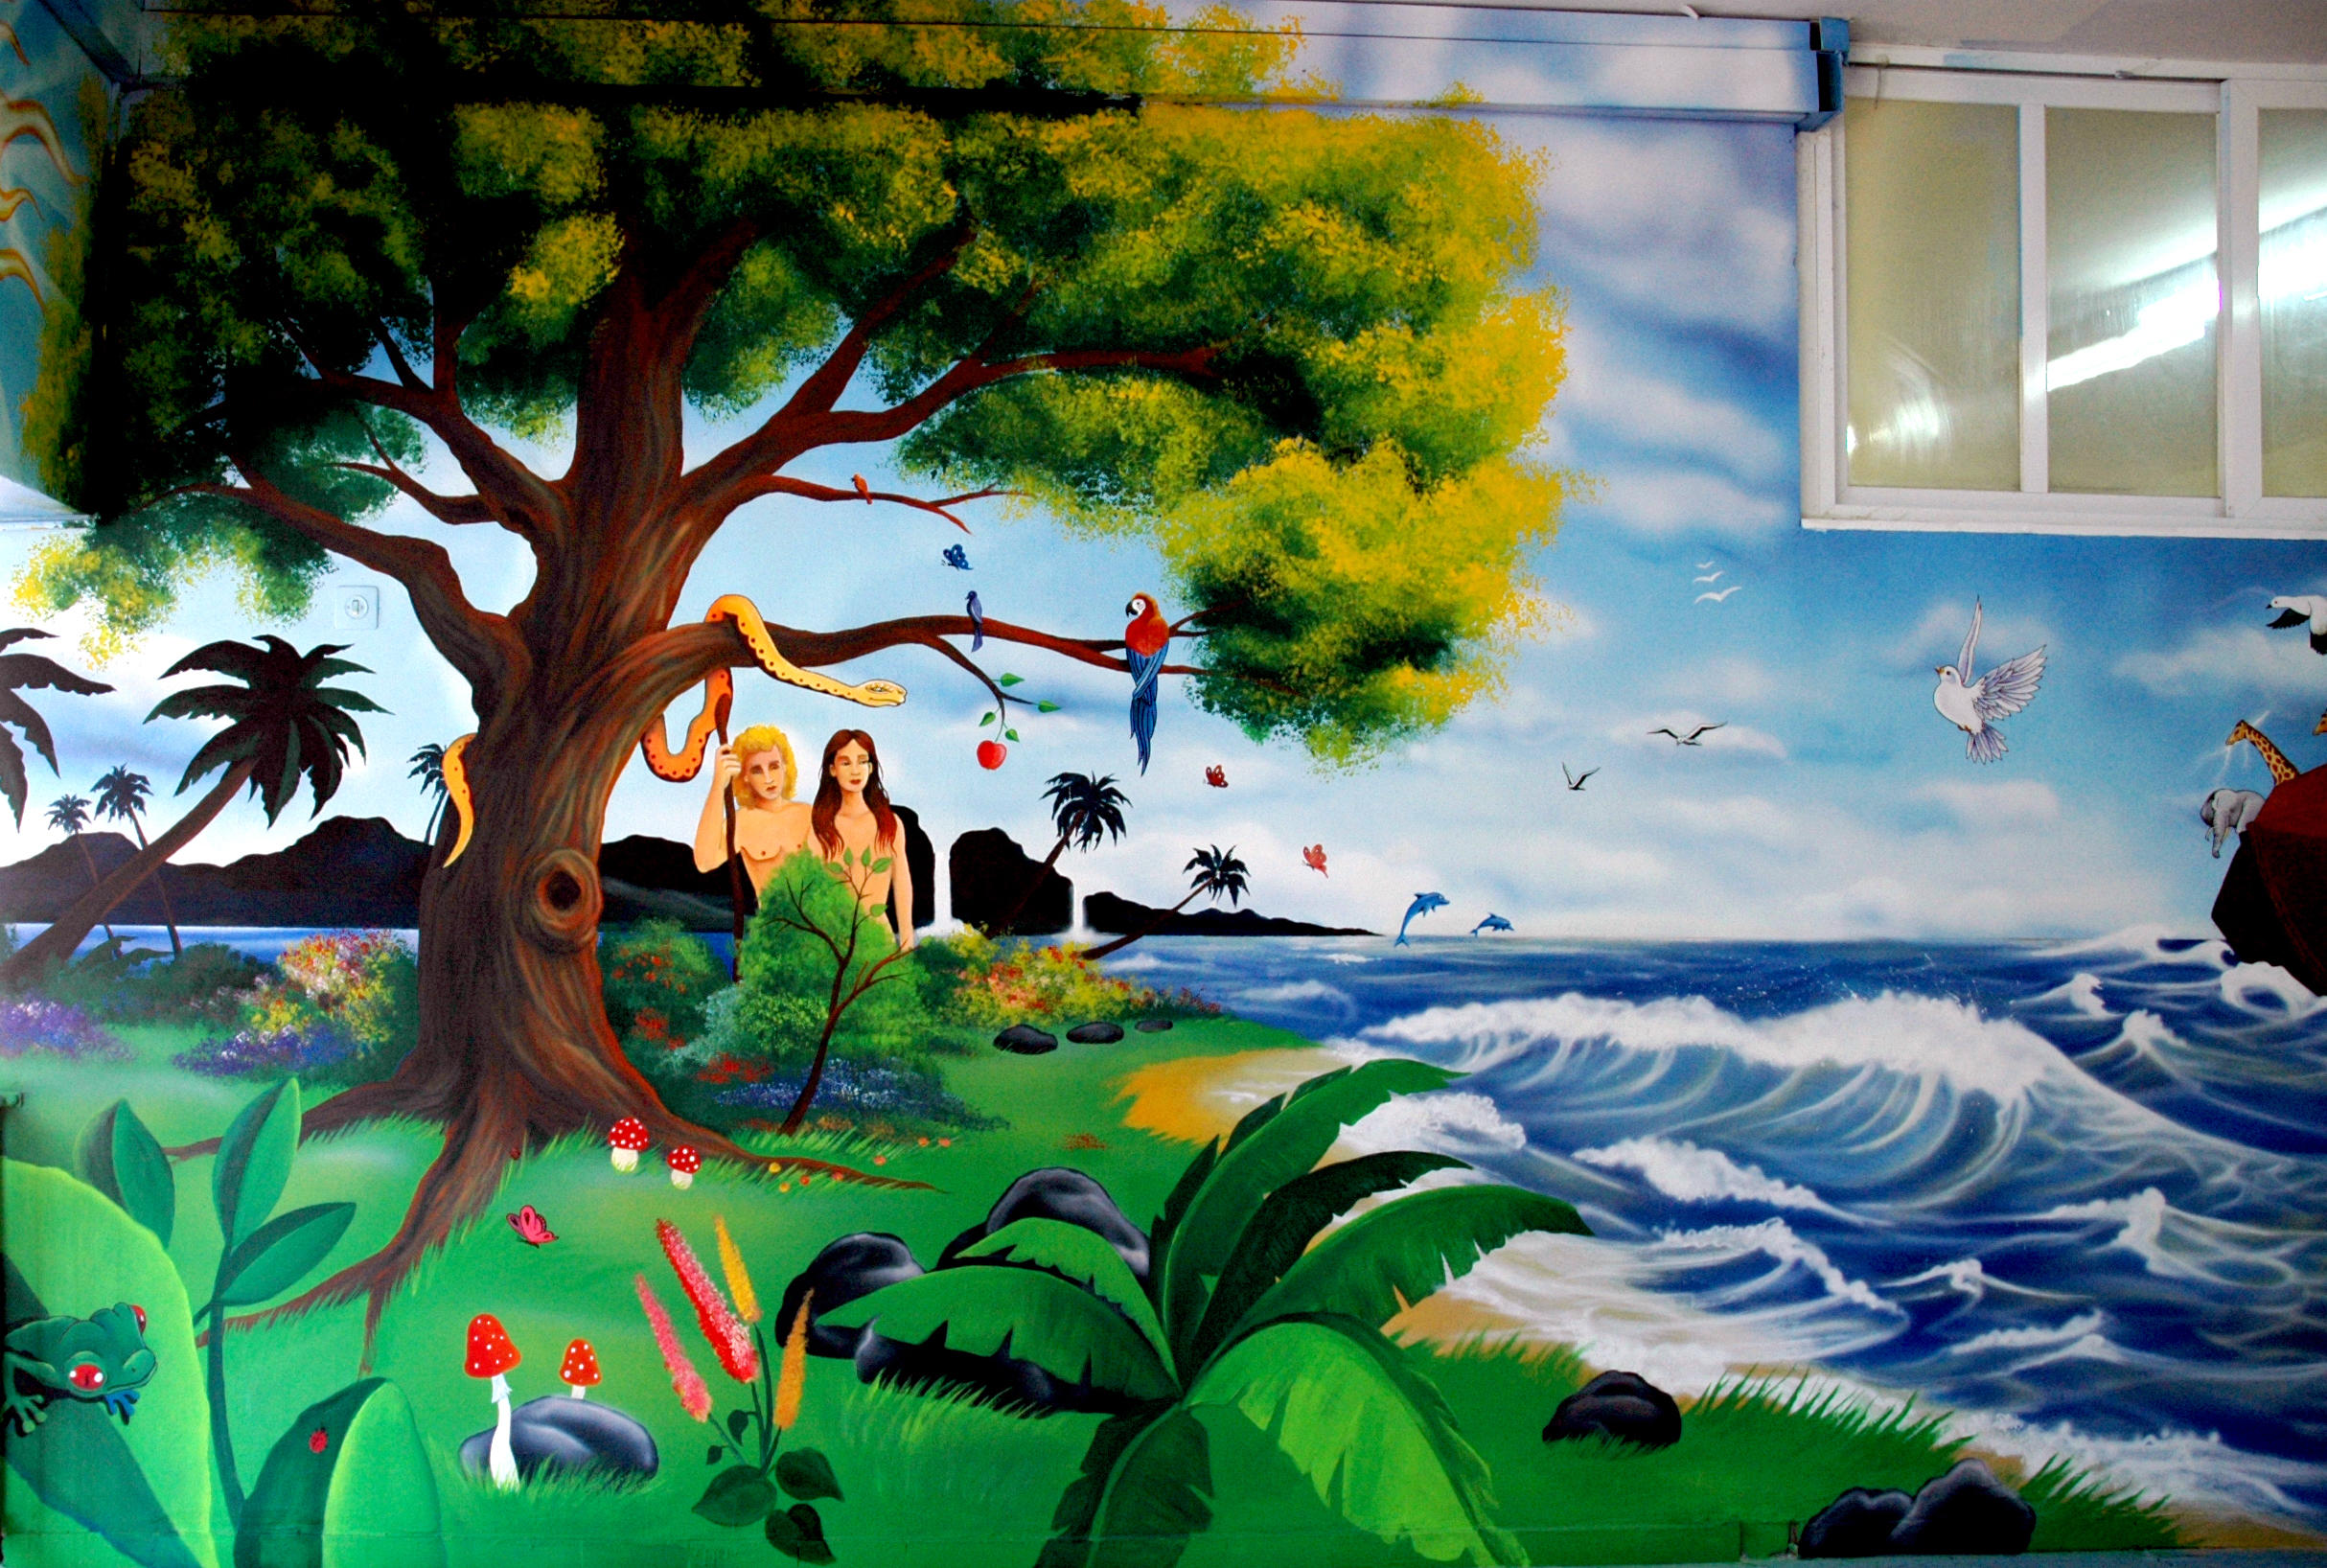 Garden of eden by victor5 on deviantart for Creation mural kids